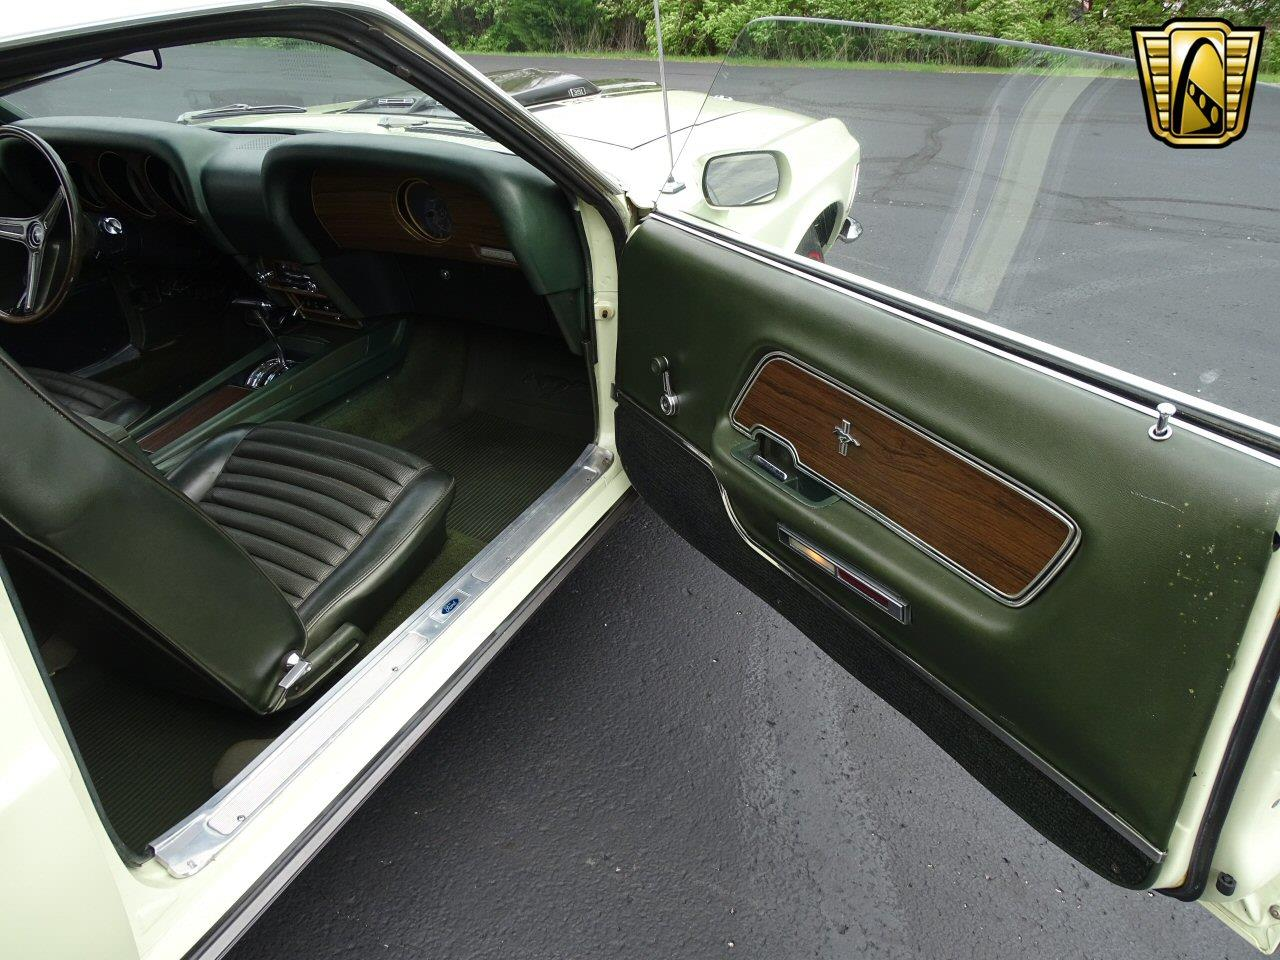 Large Picture of Classic 1970 Mustang located in Indianapolis Indiana - $47,595.00 Offered by Gateway Classic Cars - Indianapolis - L70Y